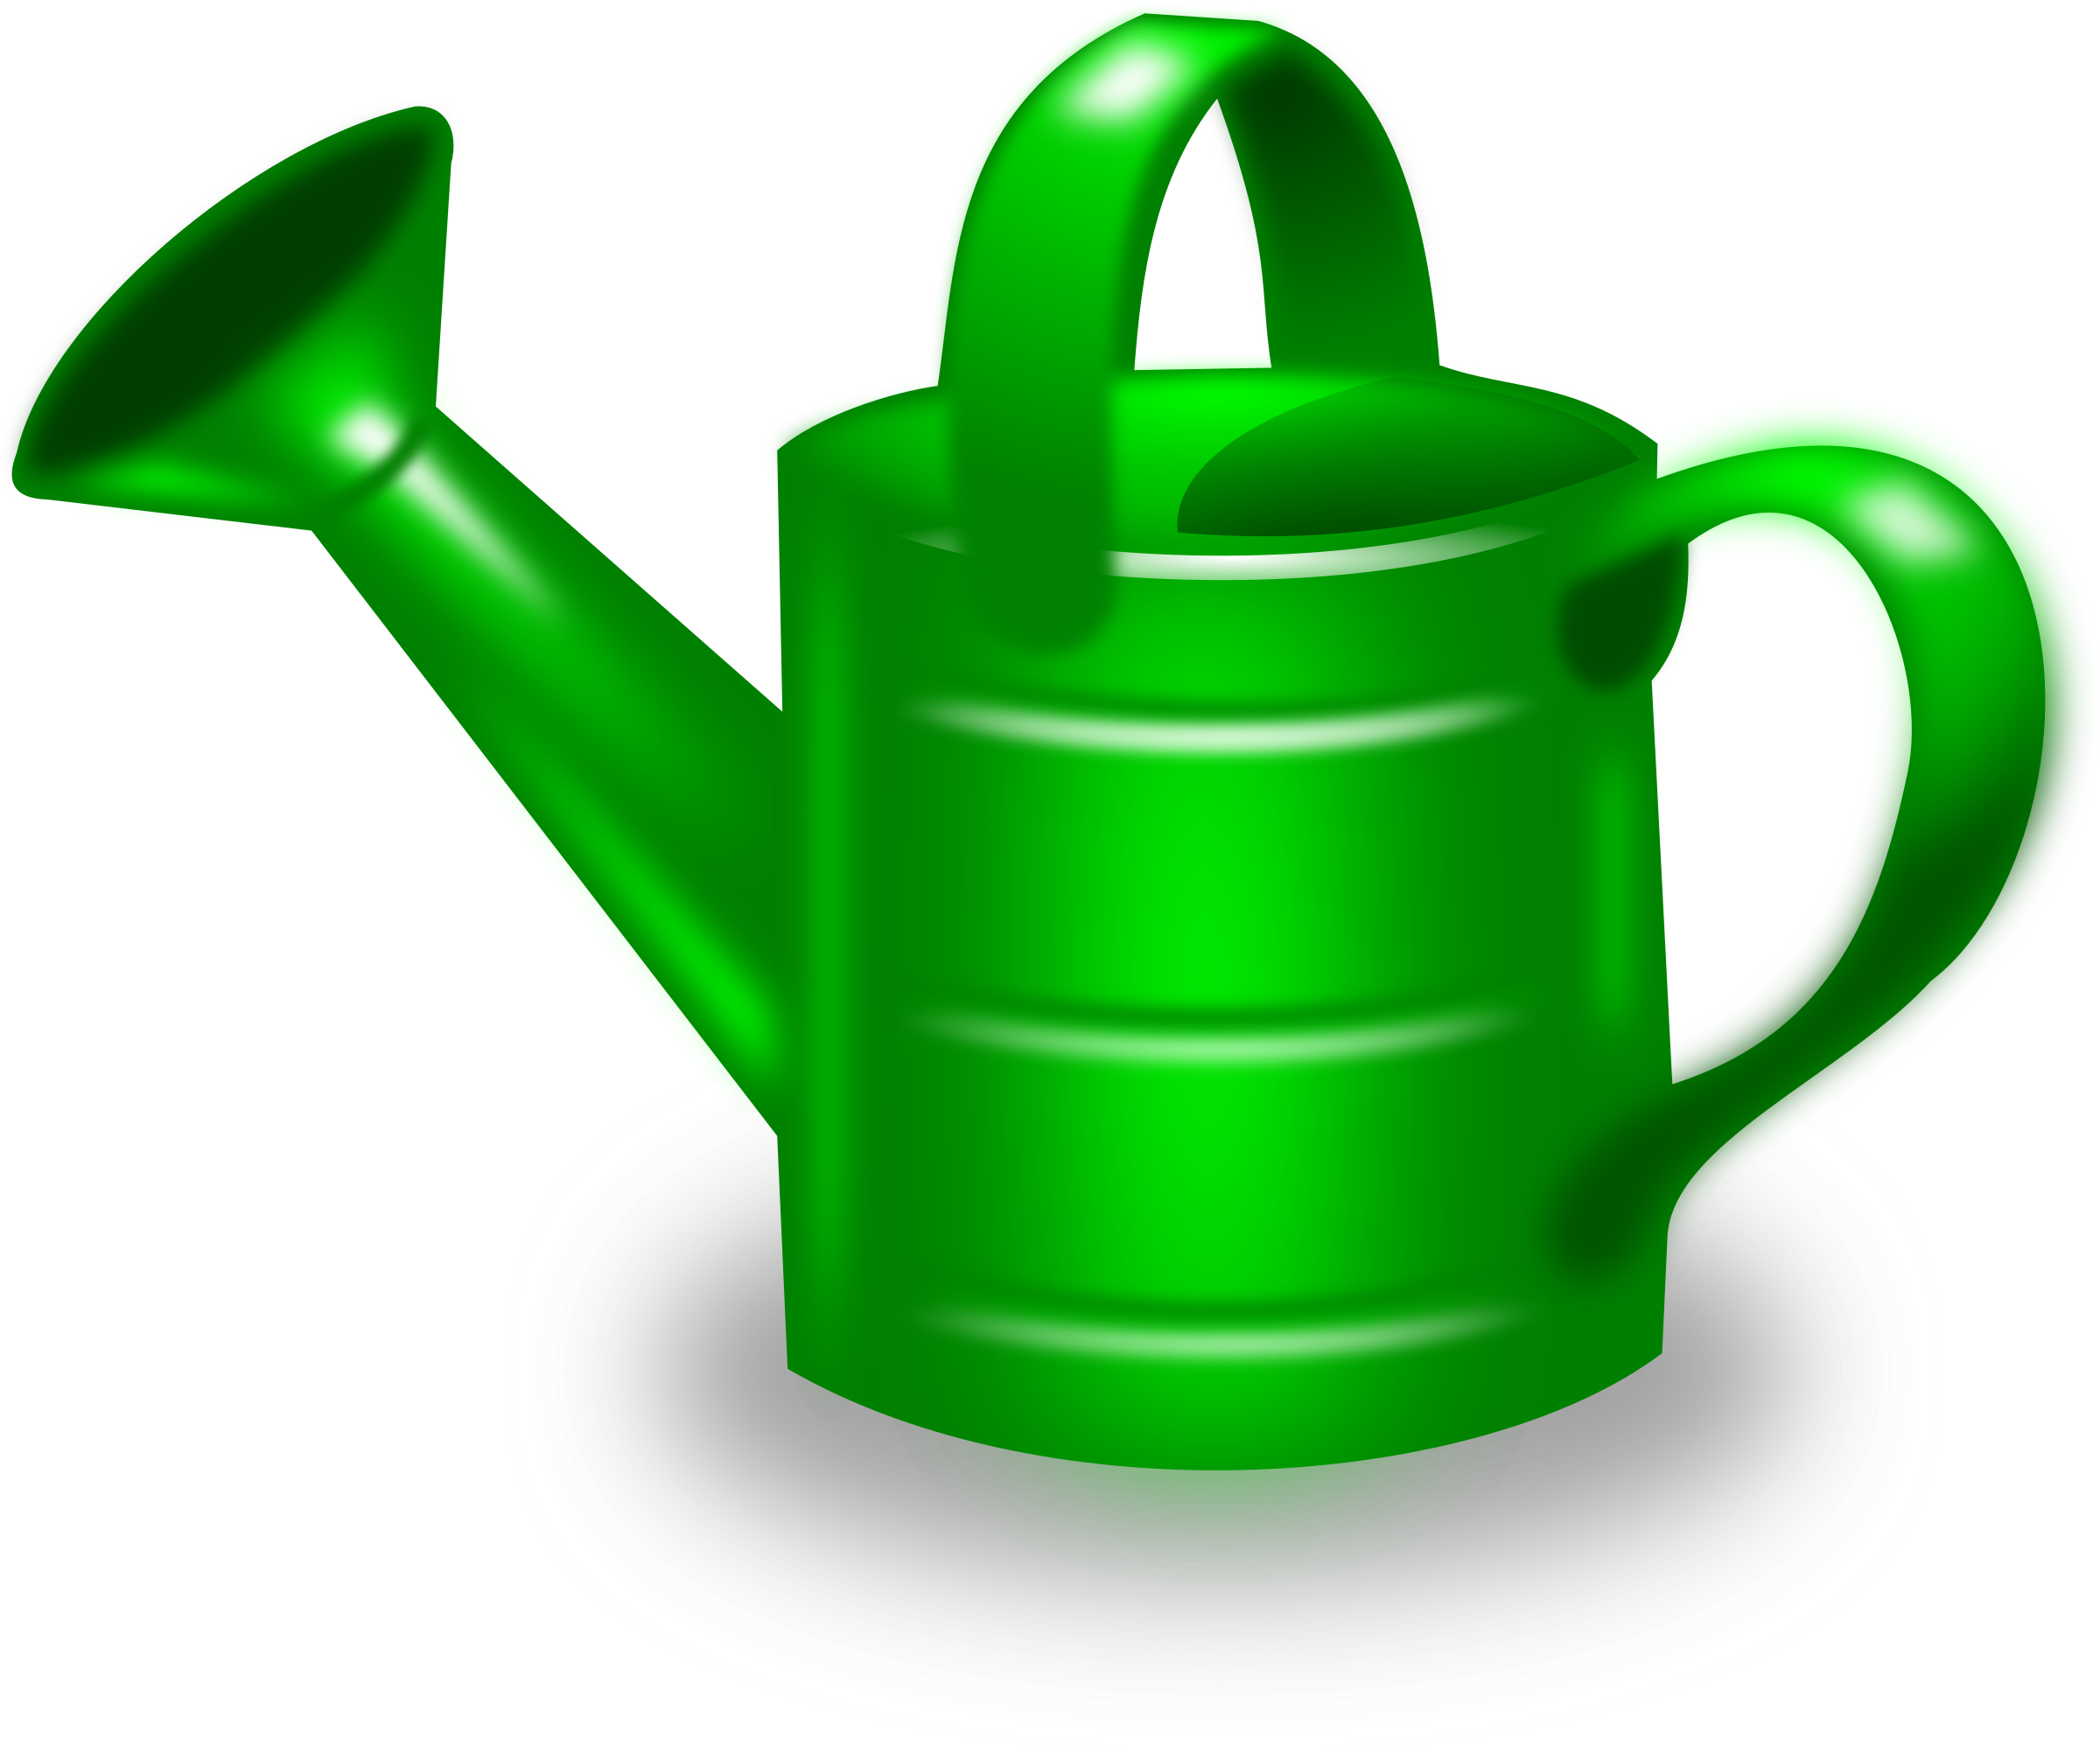 Watering Can clipart transparent Game can Watering superb component